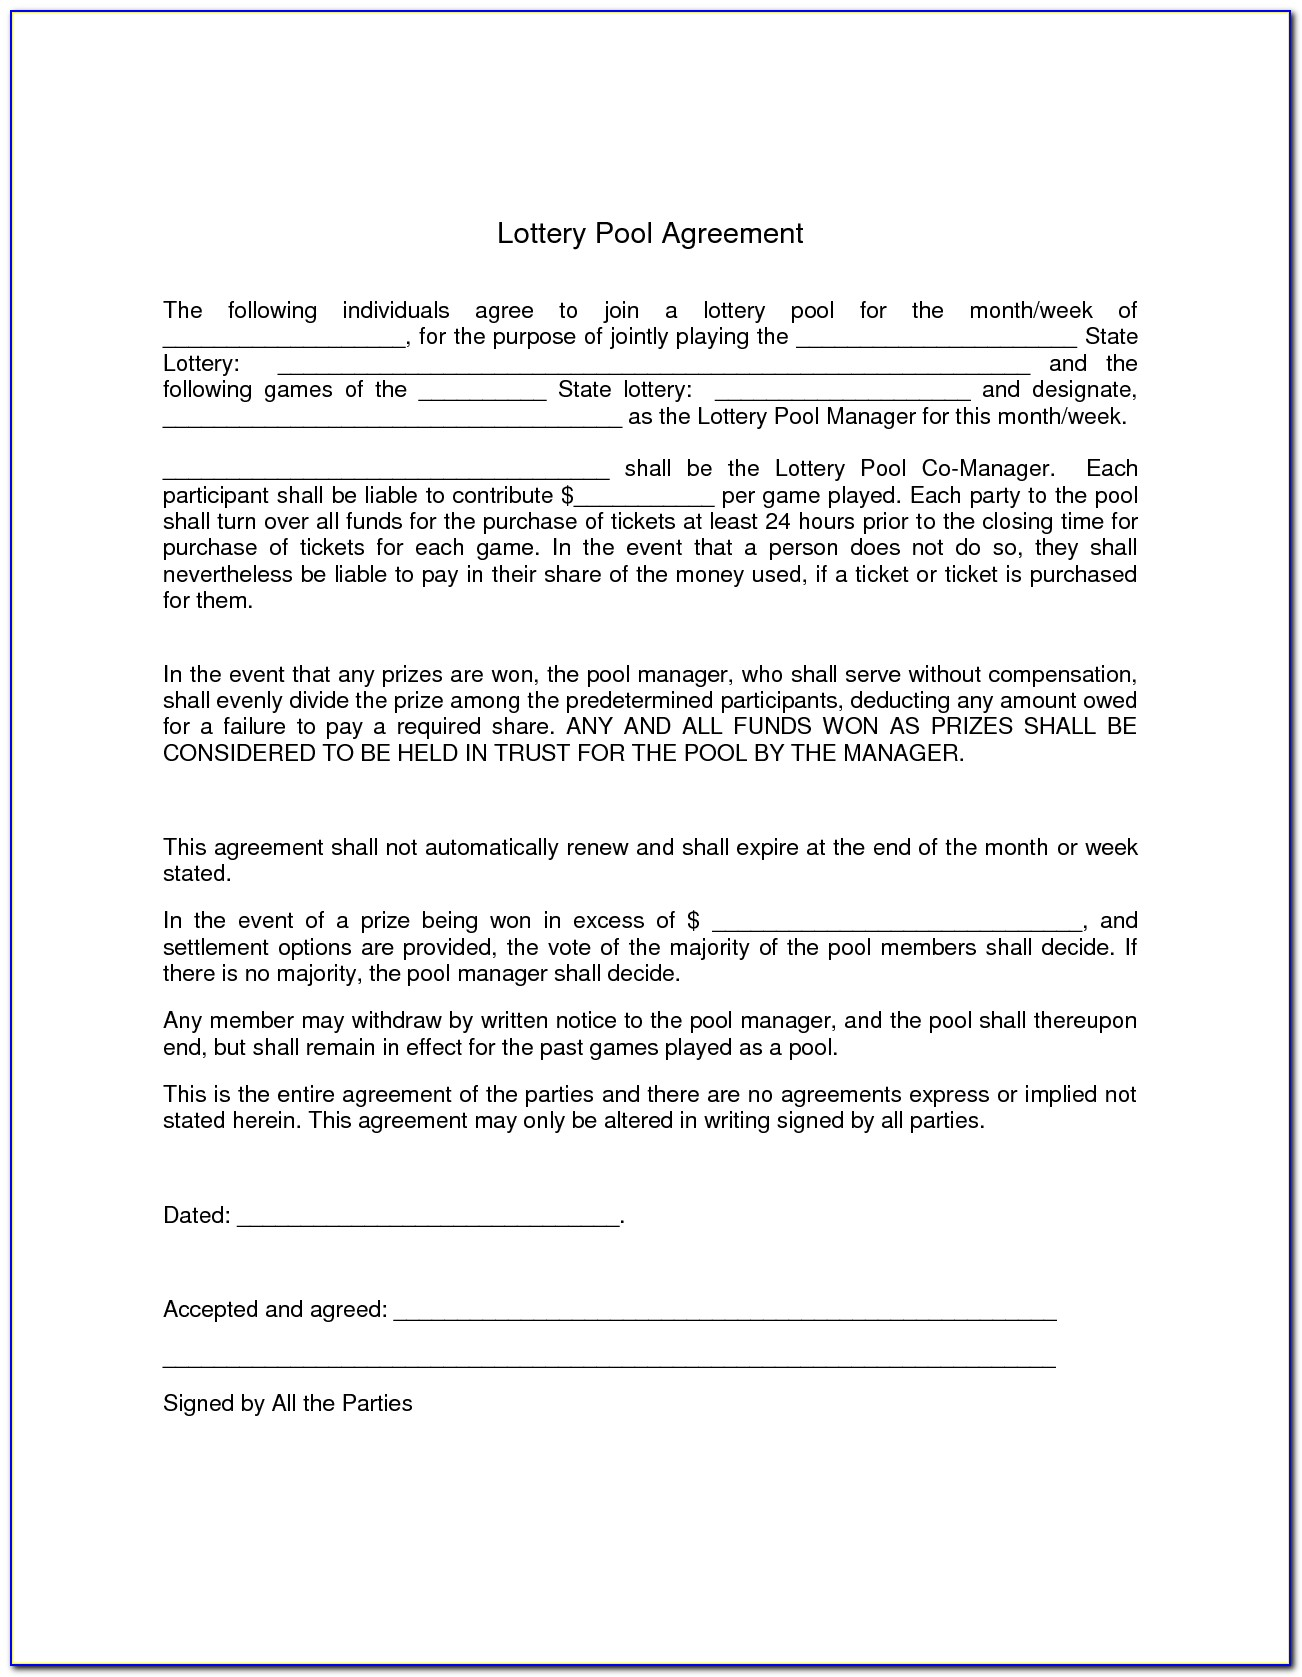 Powerball Lottery Pool Agreement Template